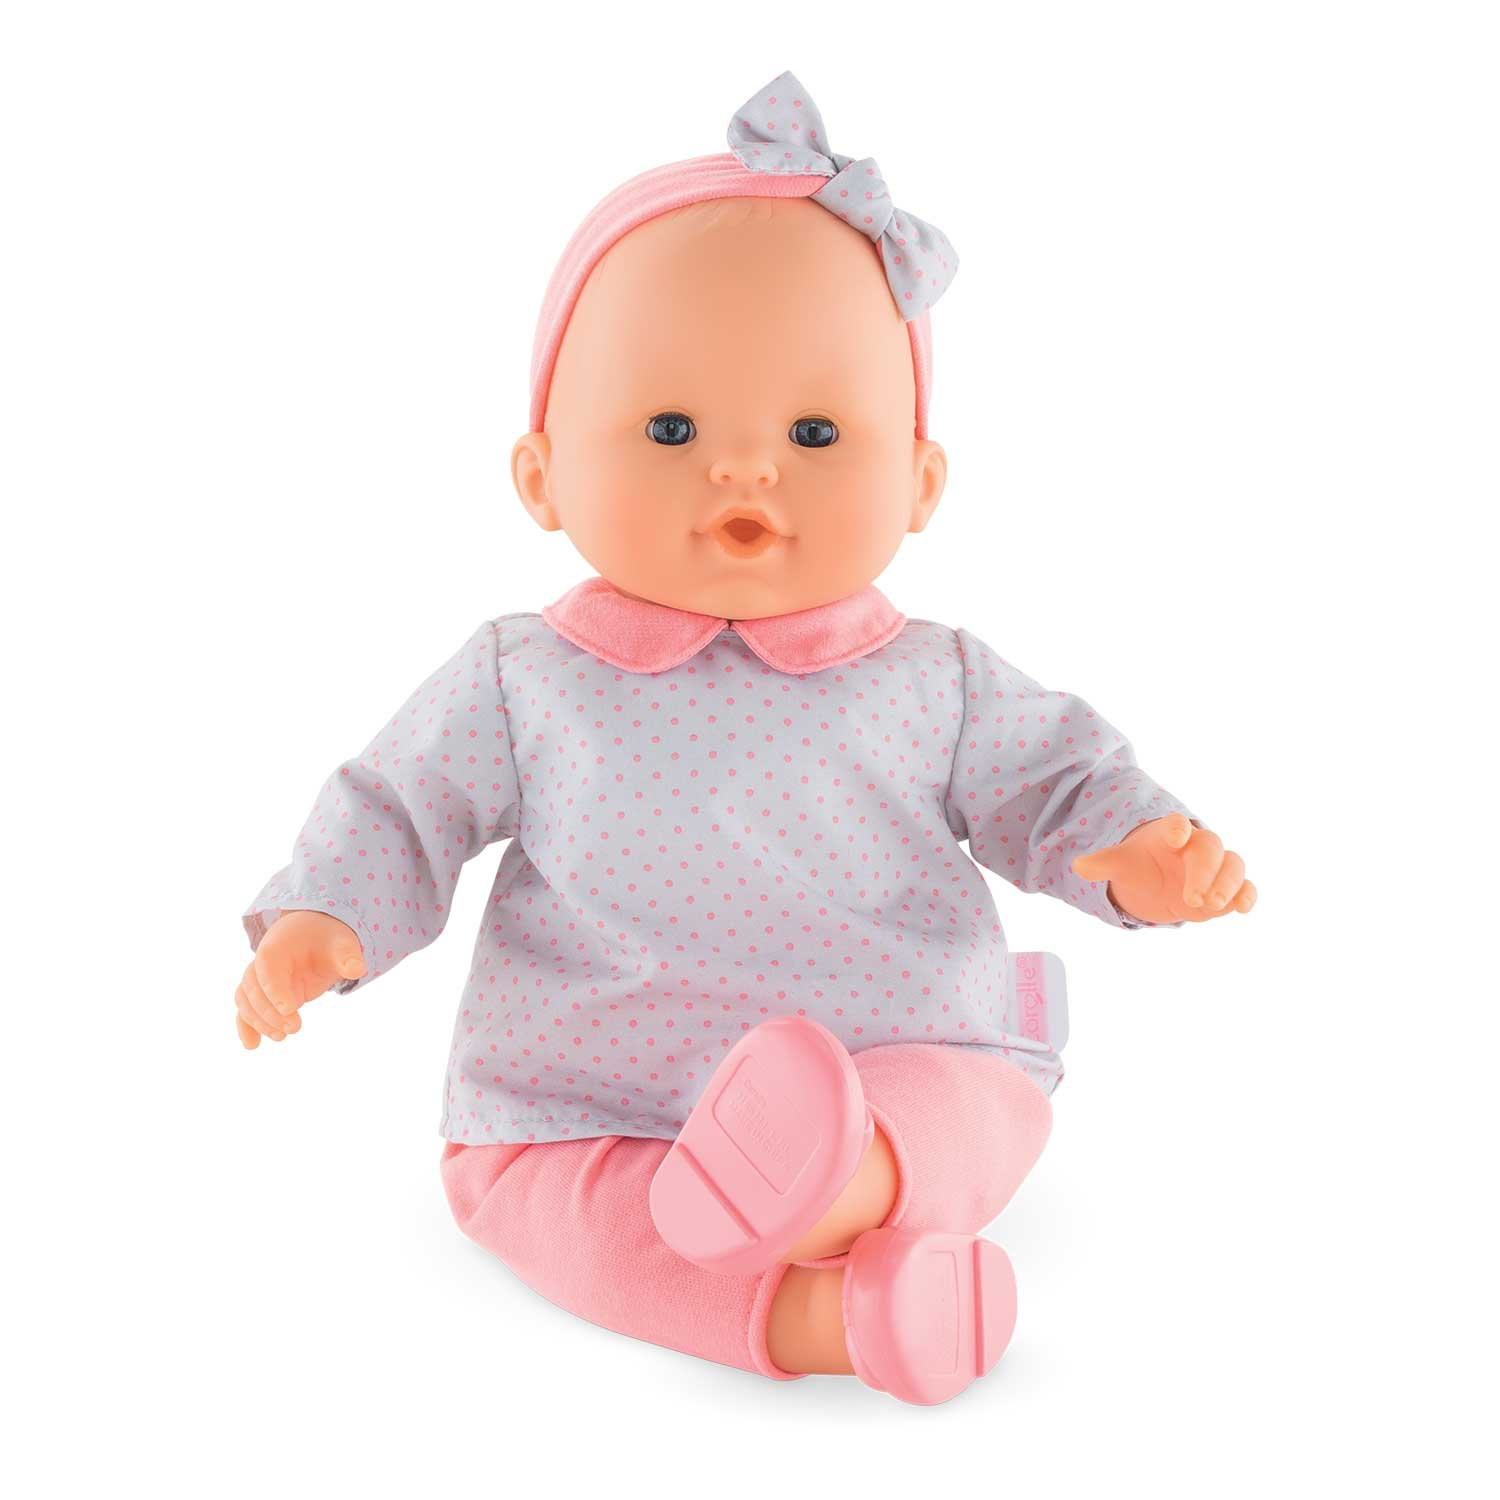 Corolle FPK14 Grands Poupons Babypuppe, grau, rosa, pink, 36 cm